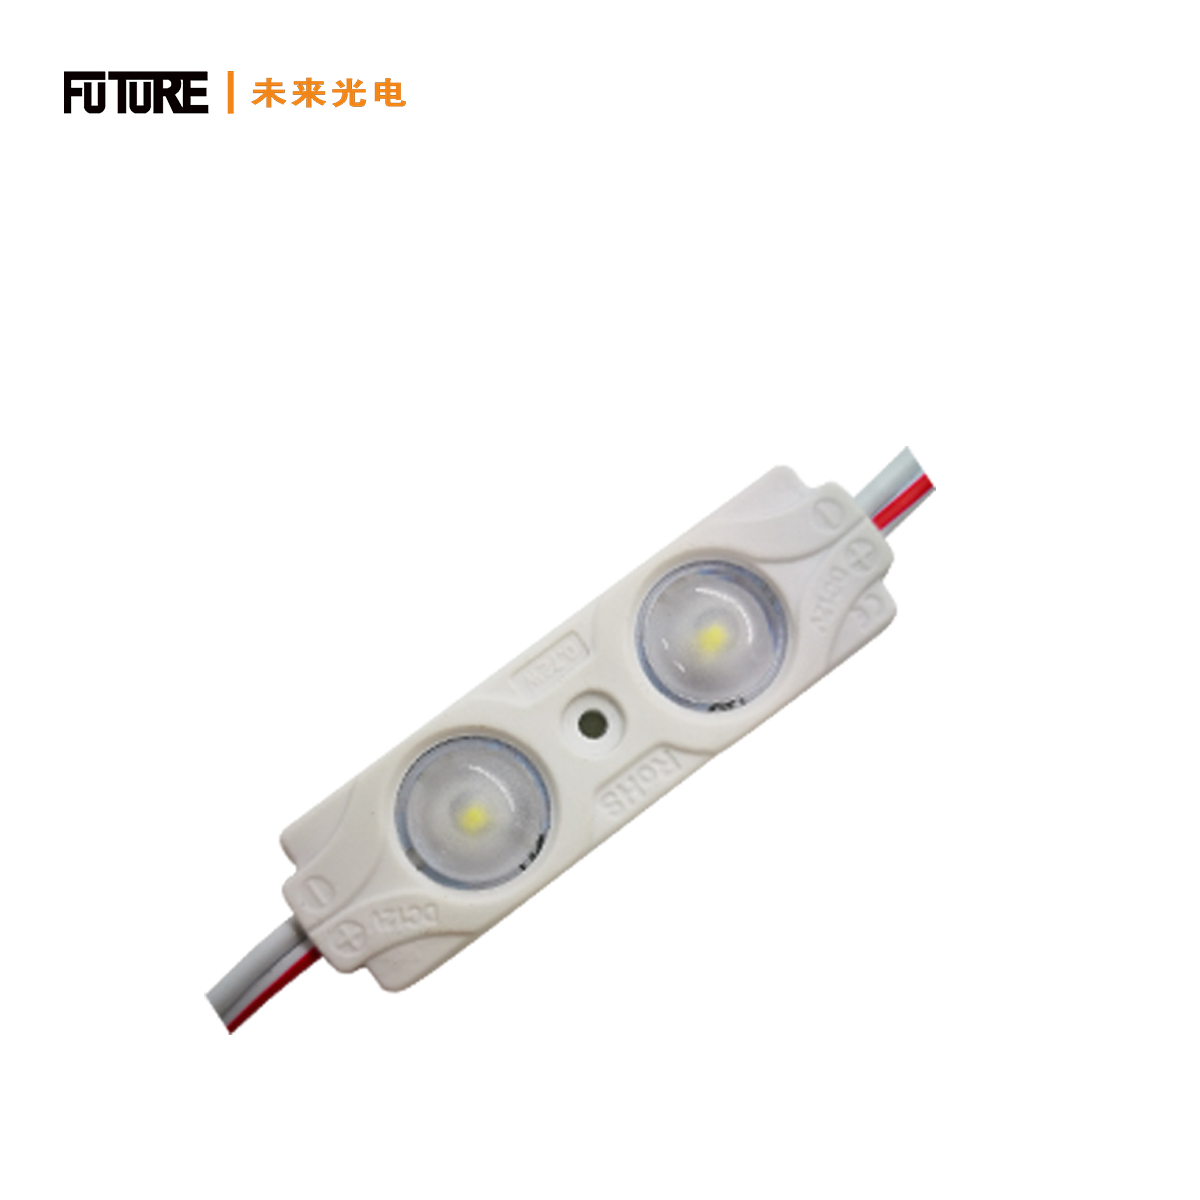 C10 2835 injection module-2leds